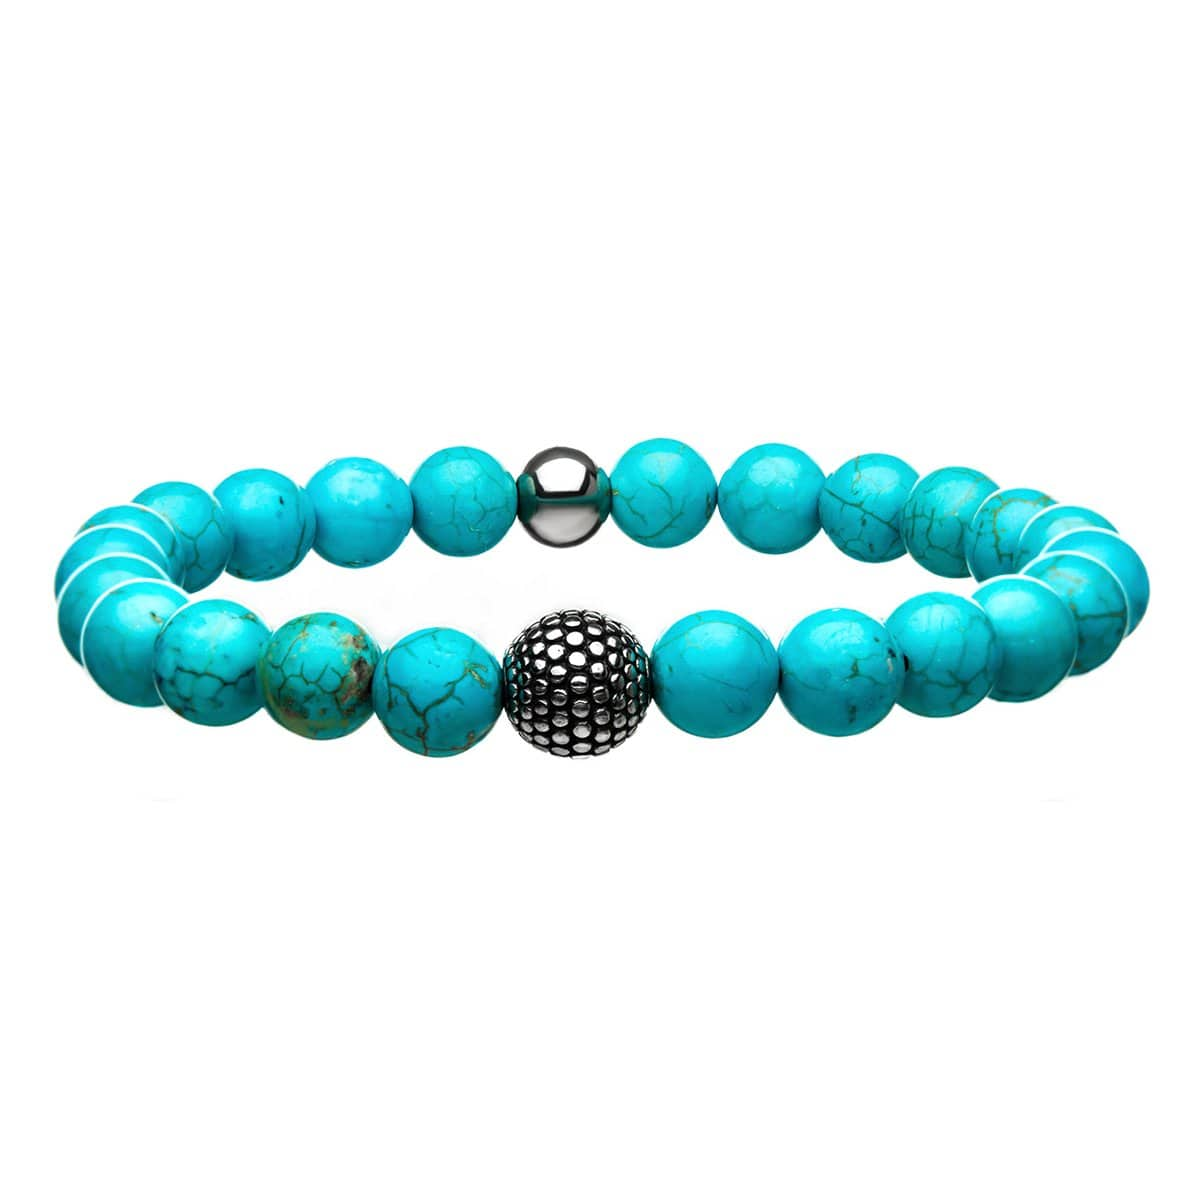 Darkened Silver Stainless Steel with Blue Turquoise Stone Bead Expandable Bracelet